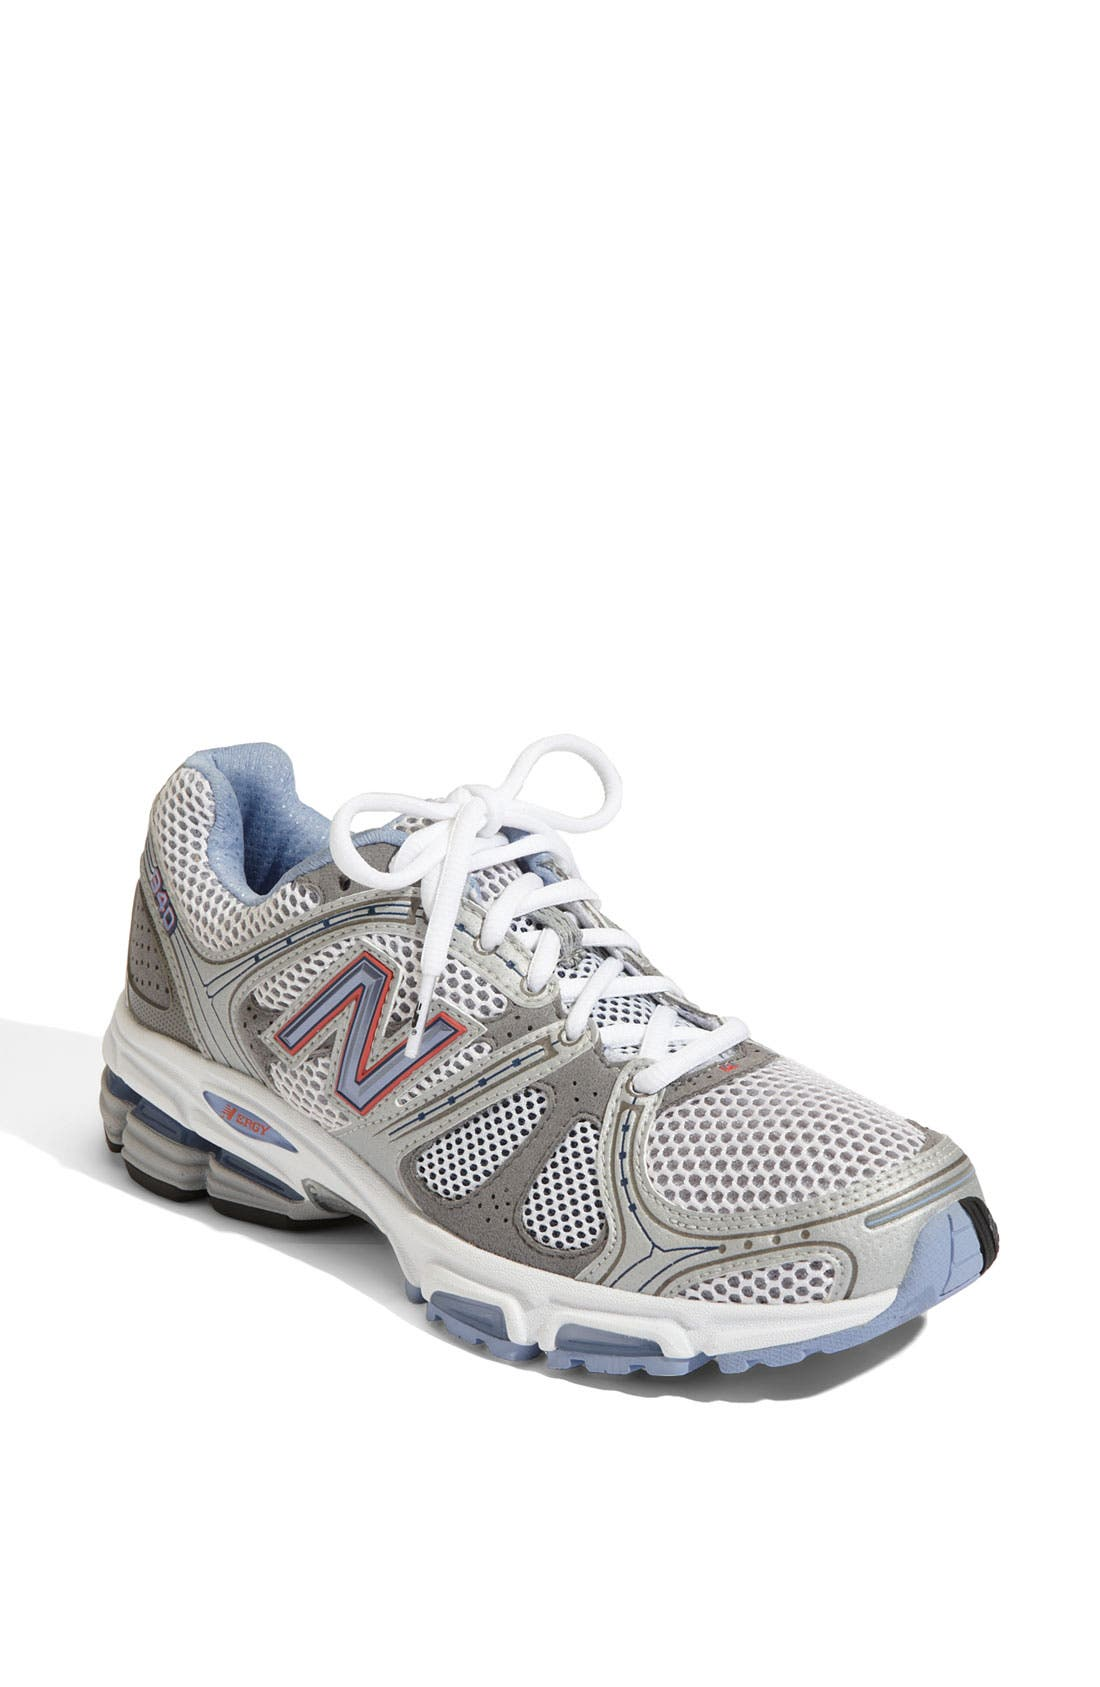 Main Image - New Balance '940' Running Shoe (Women)